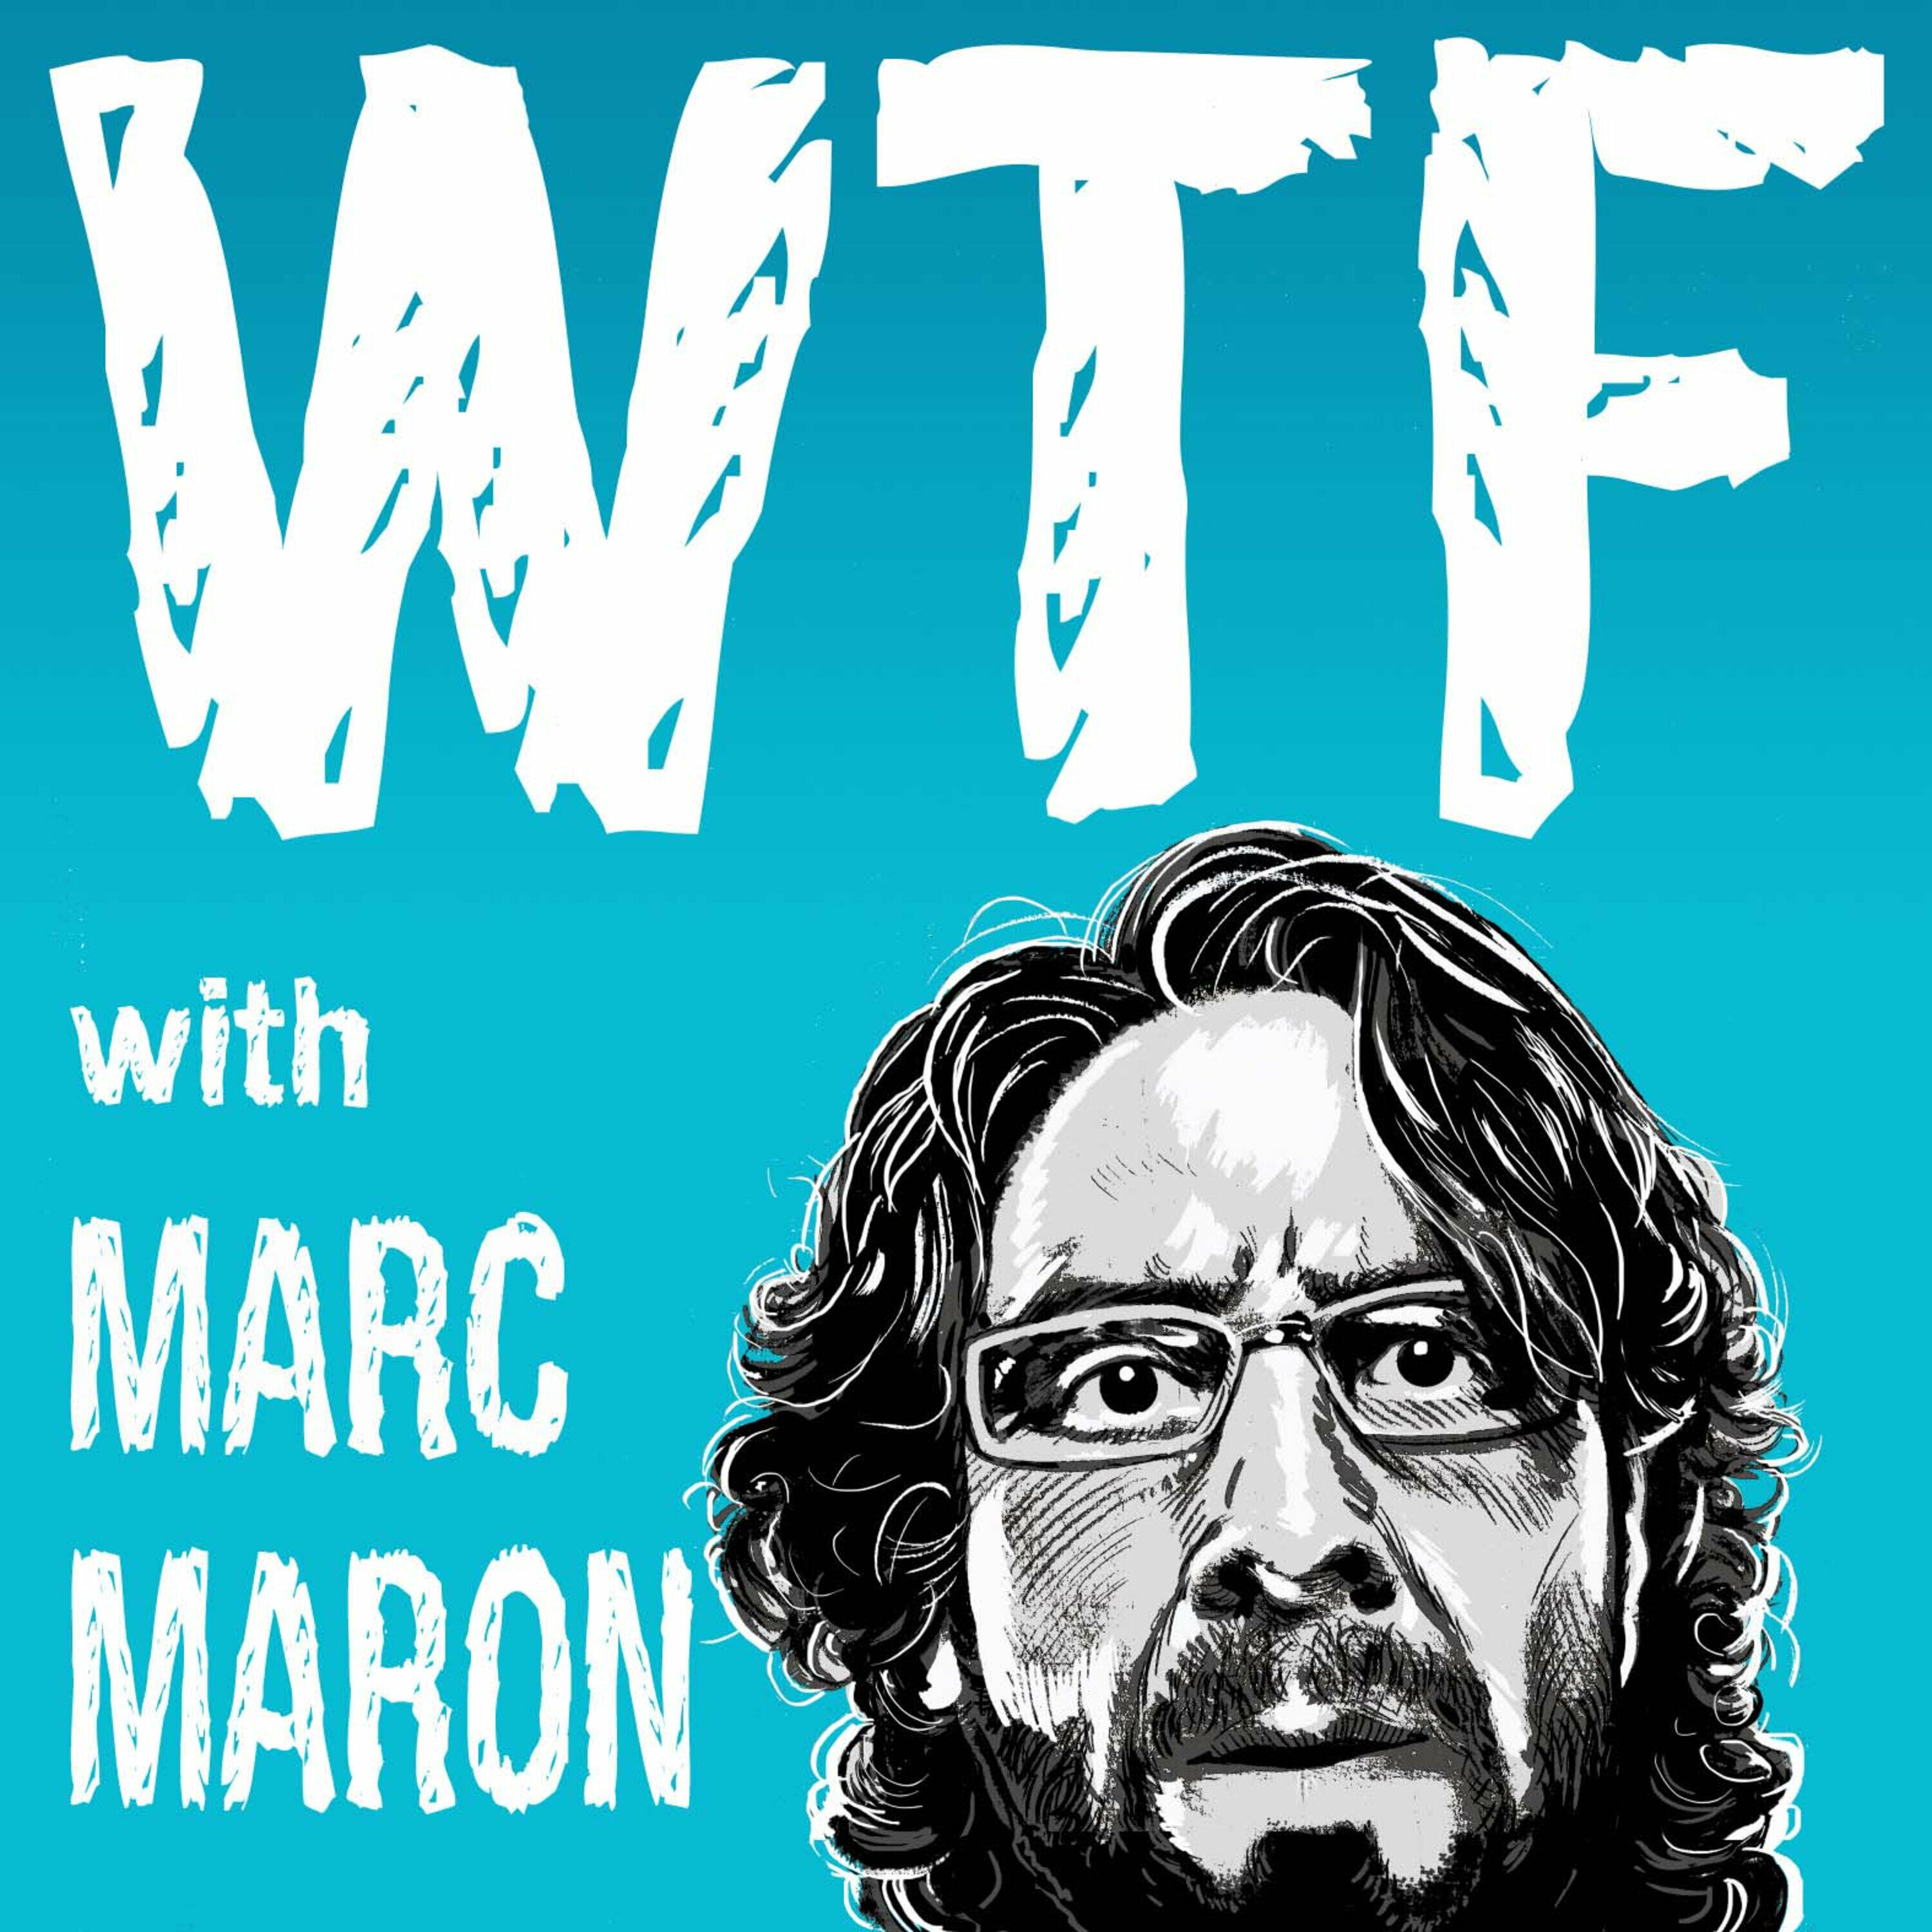 Listen to the WTF with Marc Maron Podcast Episode - Episode 982 - Seth MacFarlane on iHeartRadio | iHeartRadio